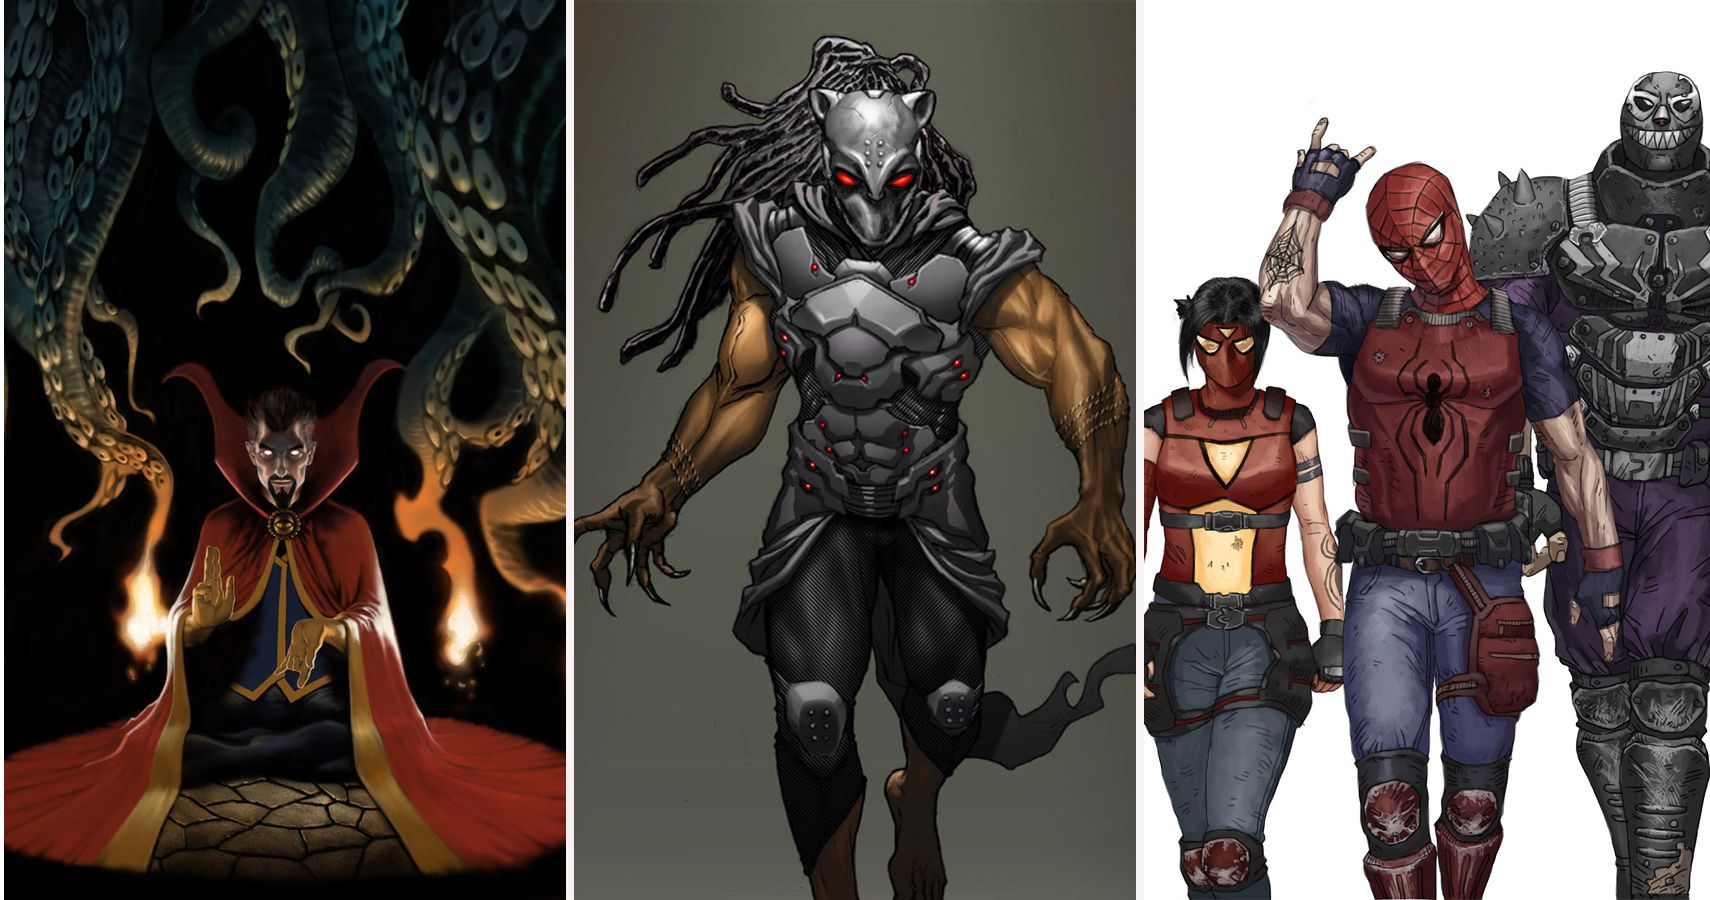 16 Marvel Superheroes Reimagined As Crazy Supervillains